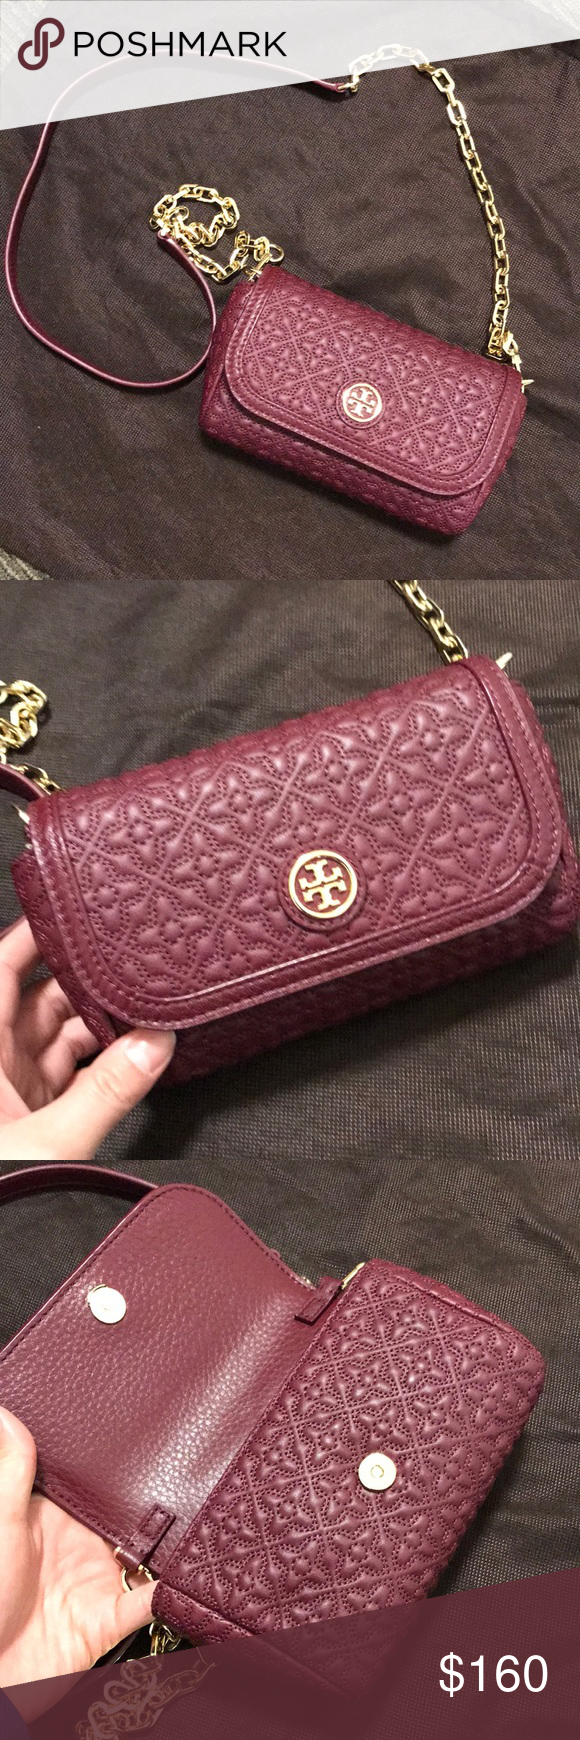 b2cbf980063c Authentic Tory Burch Bryant Quilted Mini Crossbody Tory Burch quilted  leather crossbody with gold toned hardware